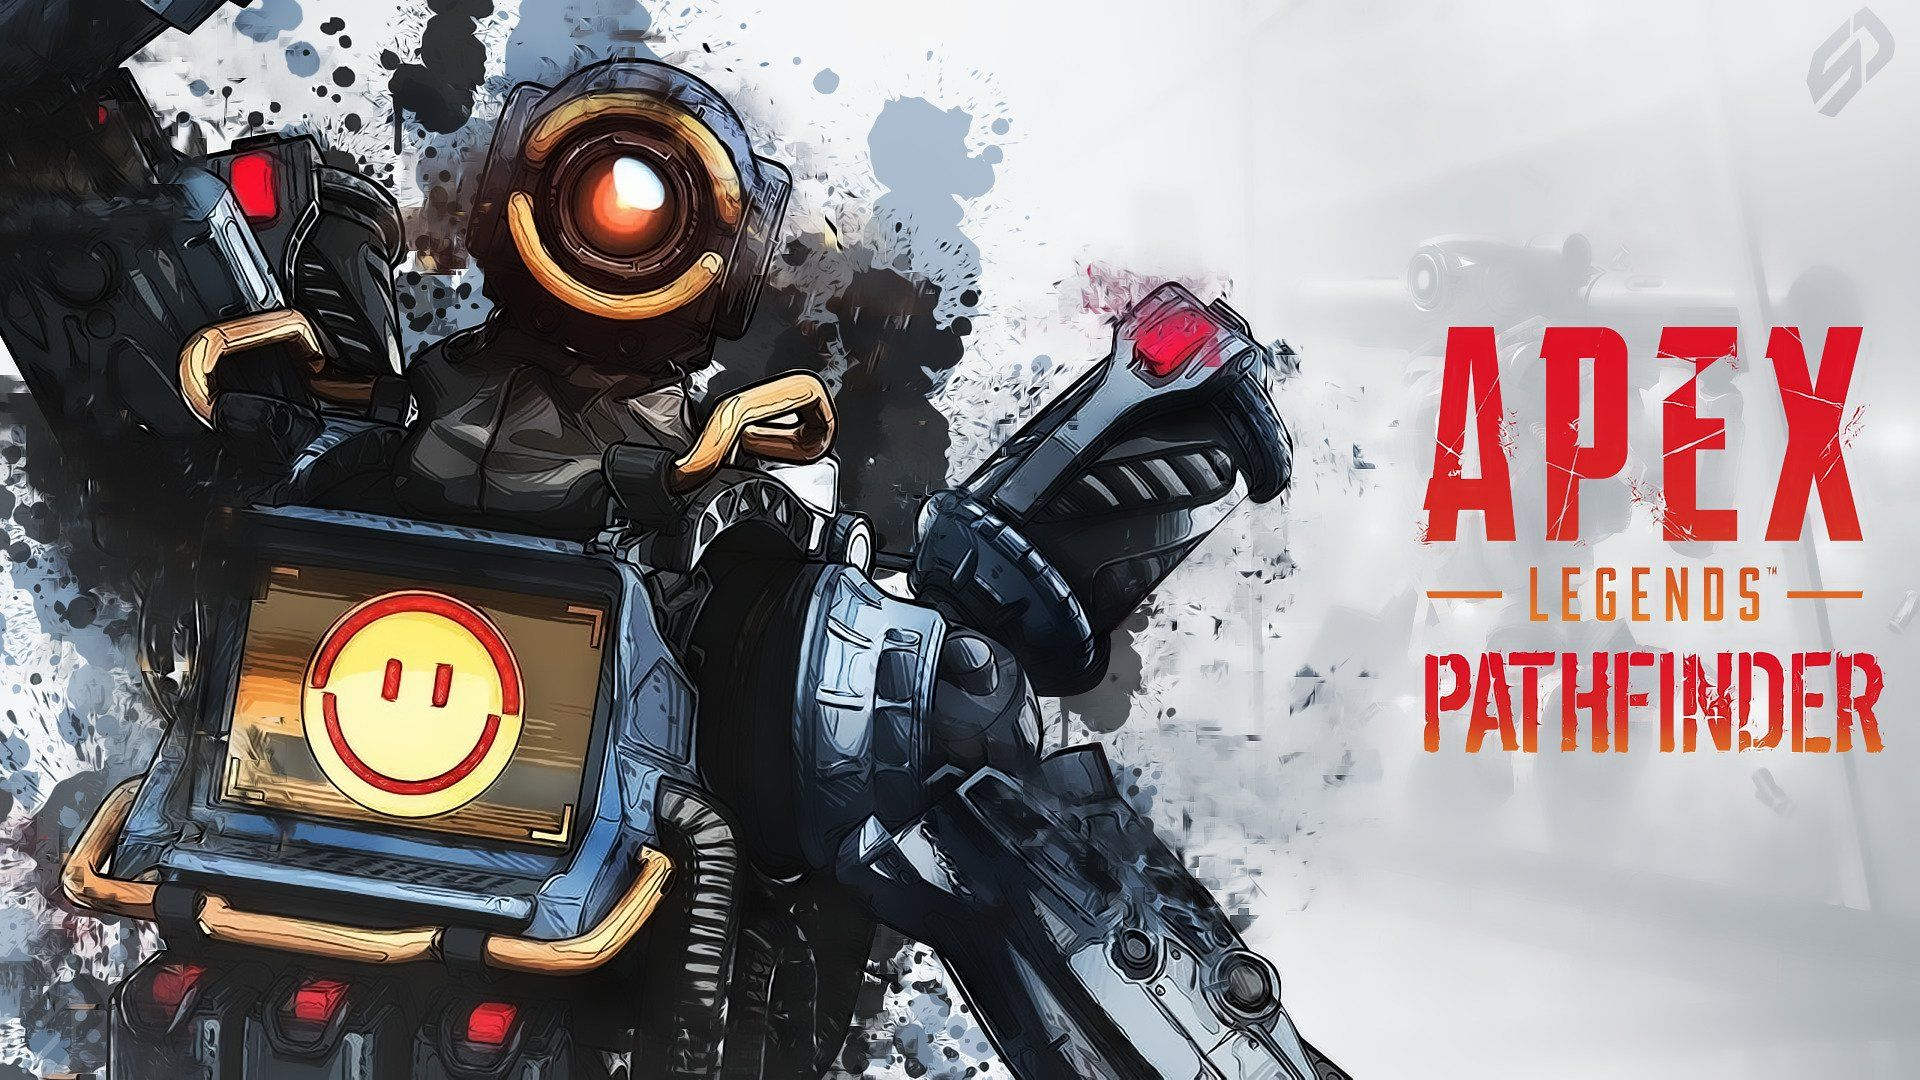 Apex Legends Pathfinder Hd Apex wallpaper 4k 2019, Apex